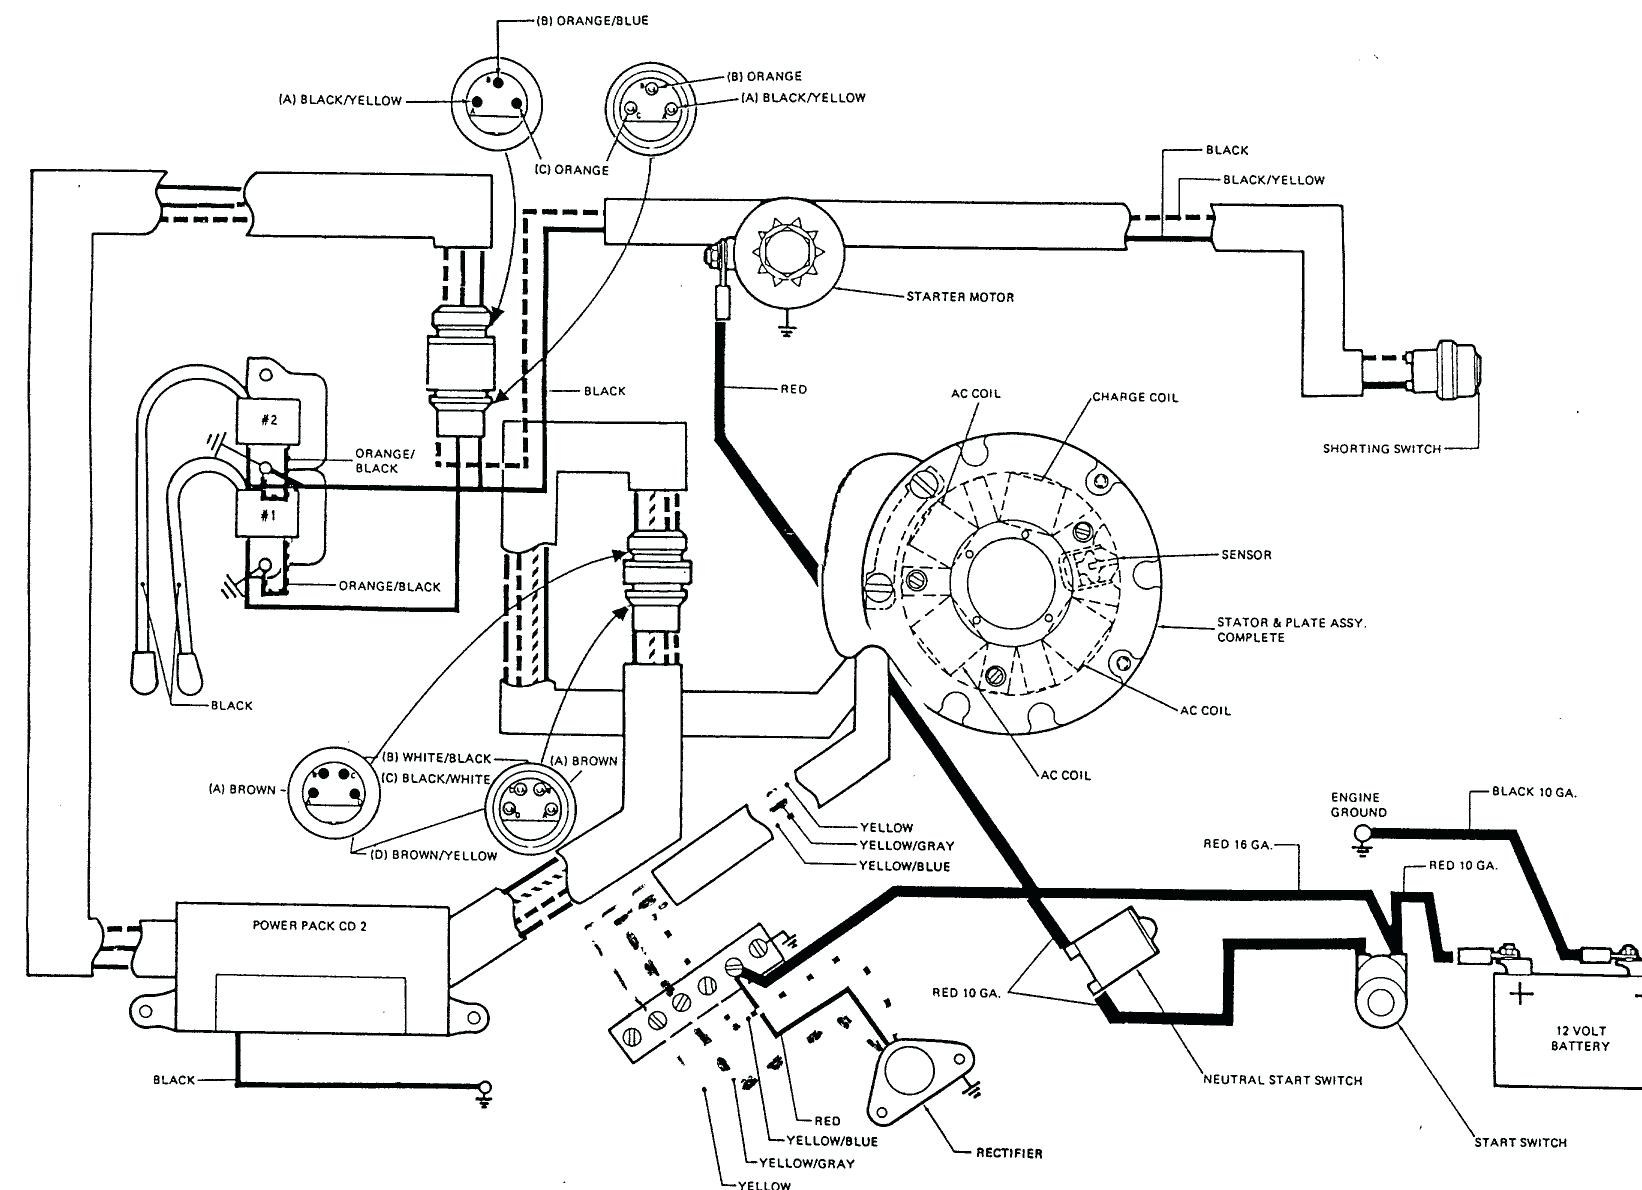 [DIAGRAM] For Marathon Electric Motor Single Phase Wiring